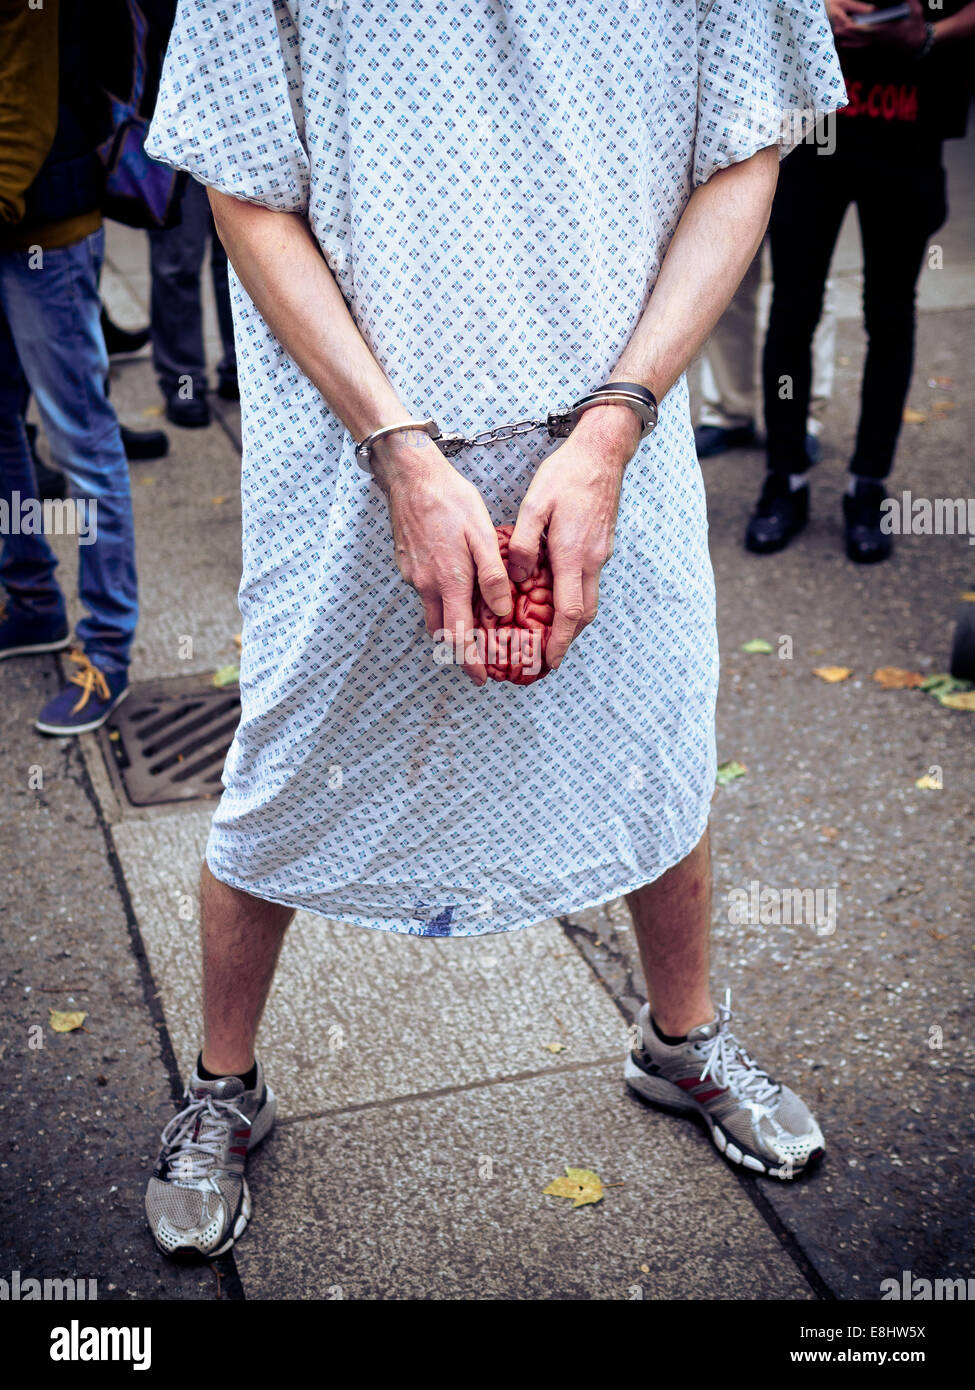 Man in hospital gown with handcuffs holding plastic brain. Head not ...